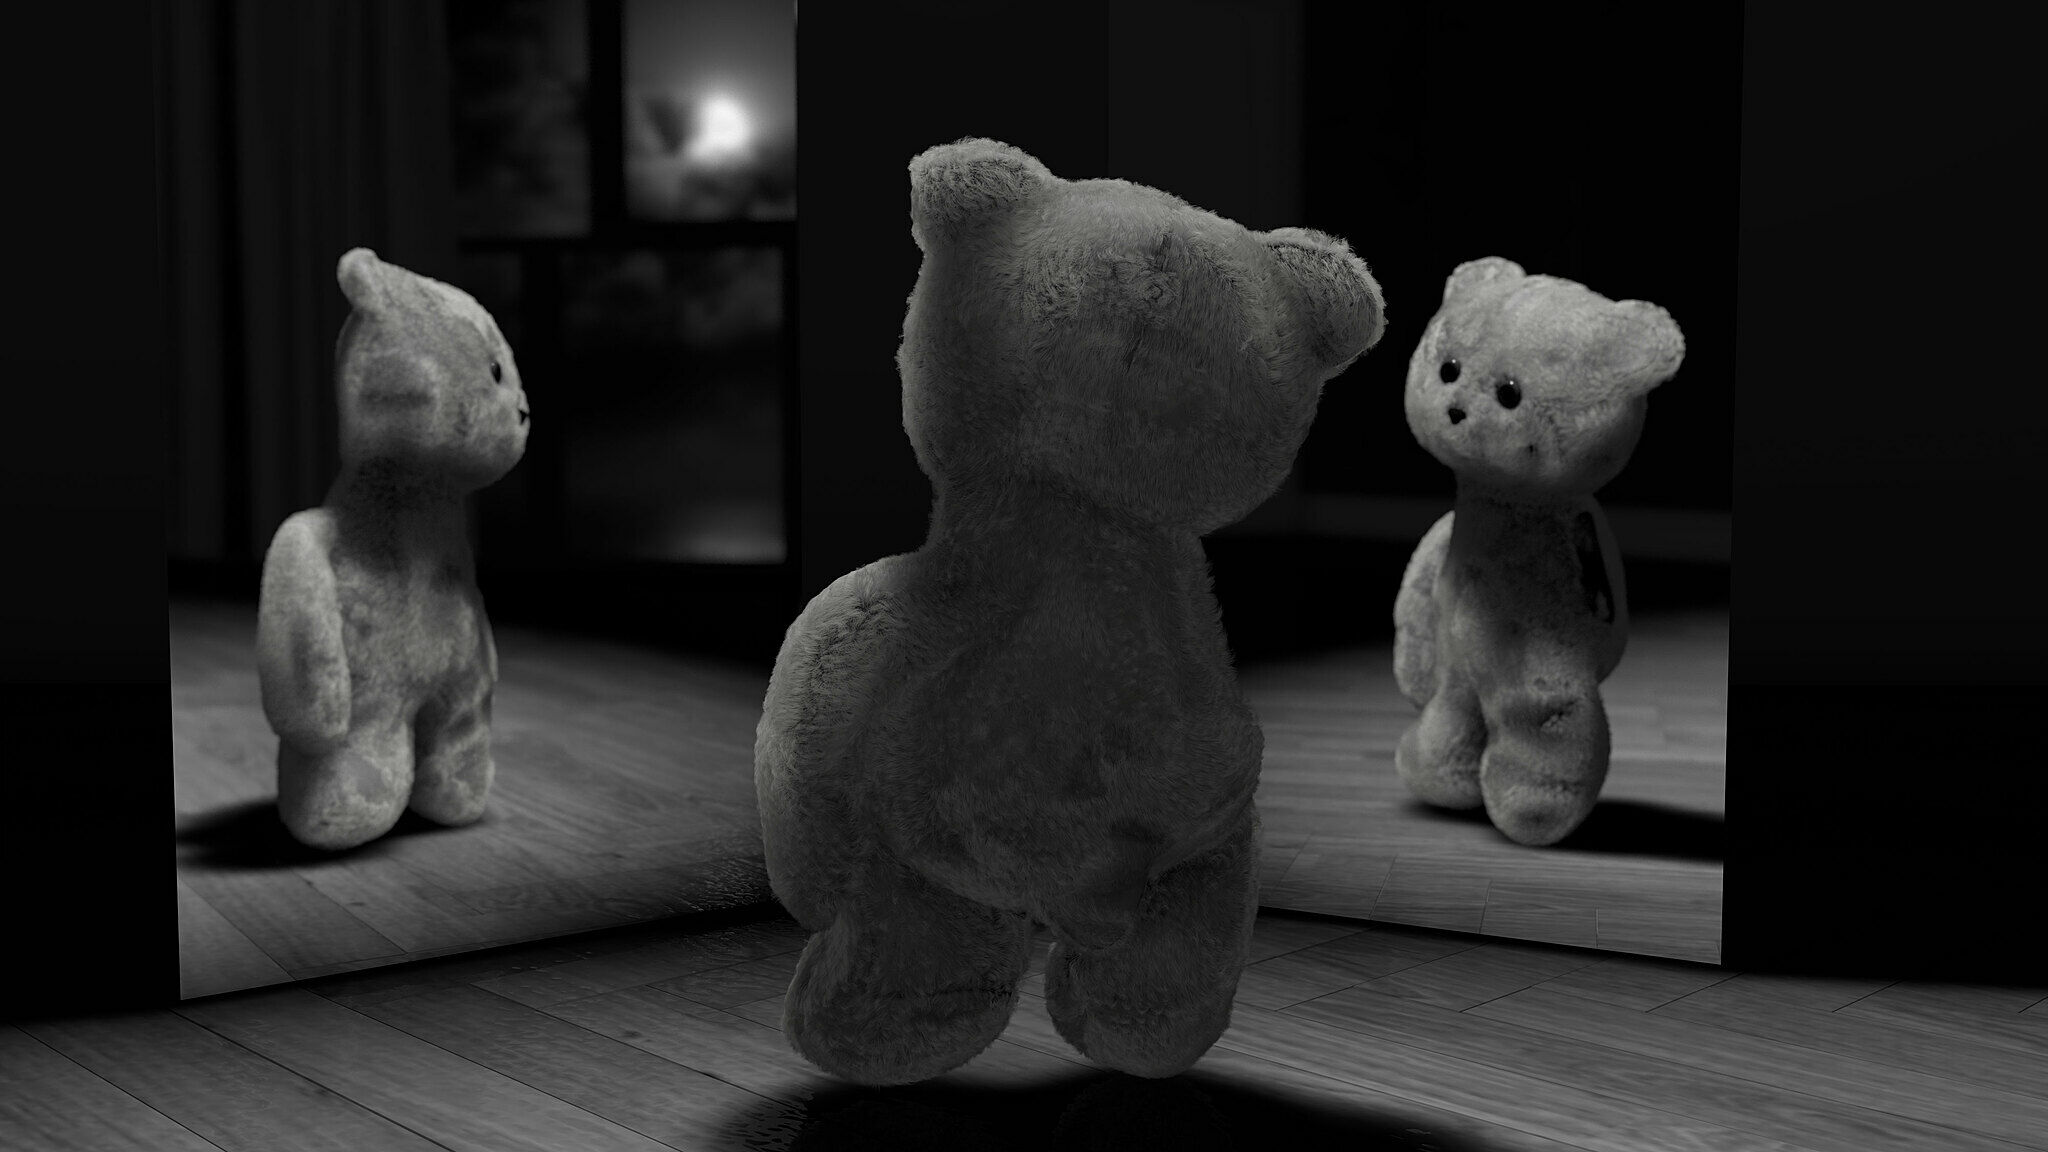 A stuffed bear looking at itself in two mirrors.